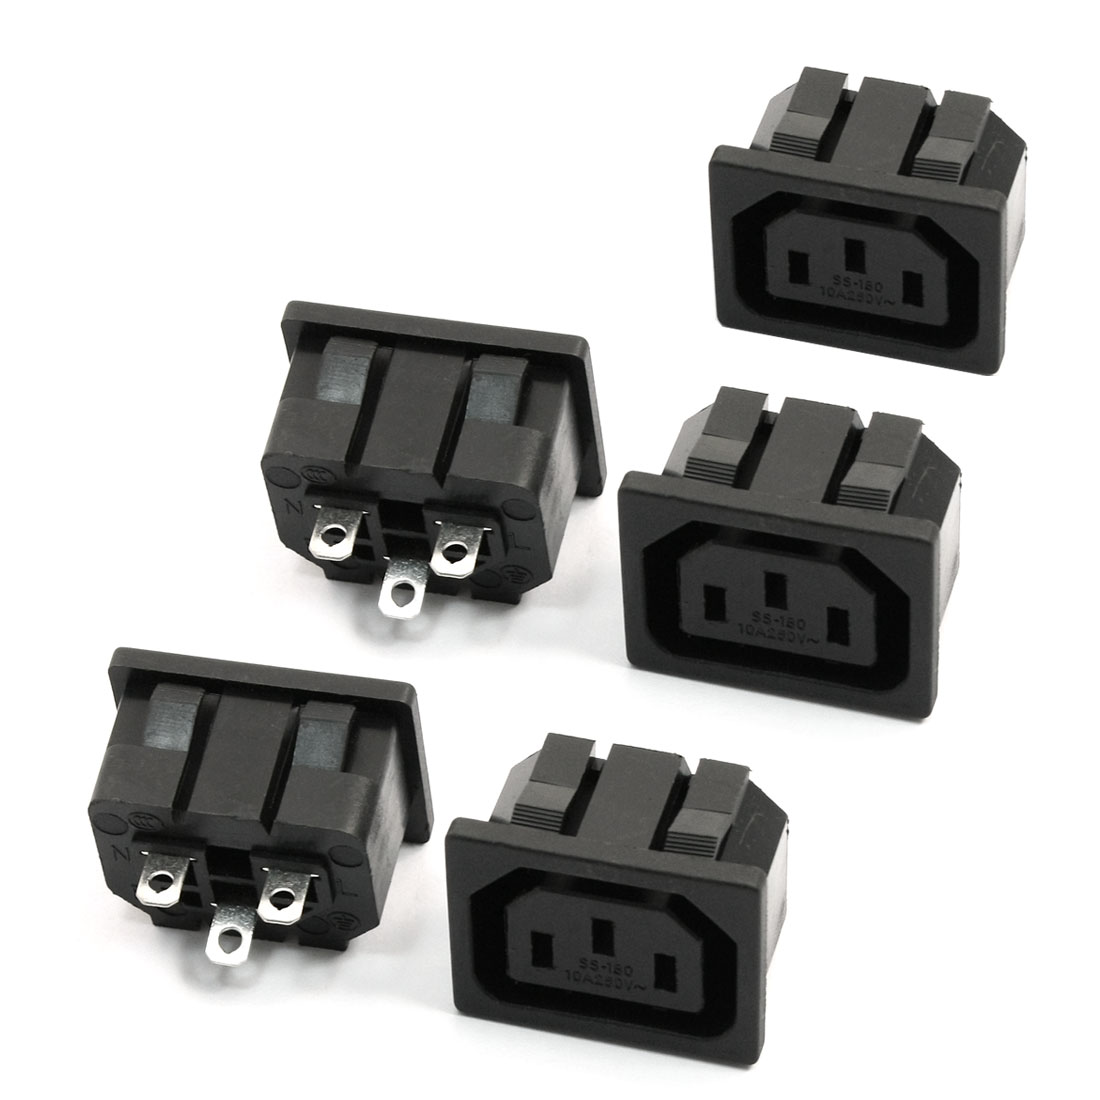 5 Pcs IEC 320 C13 Panel Outlet Power Socket Clamp Type Connector AC 250V 10A